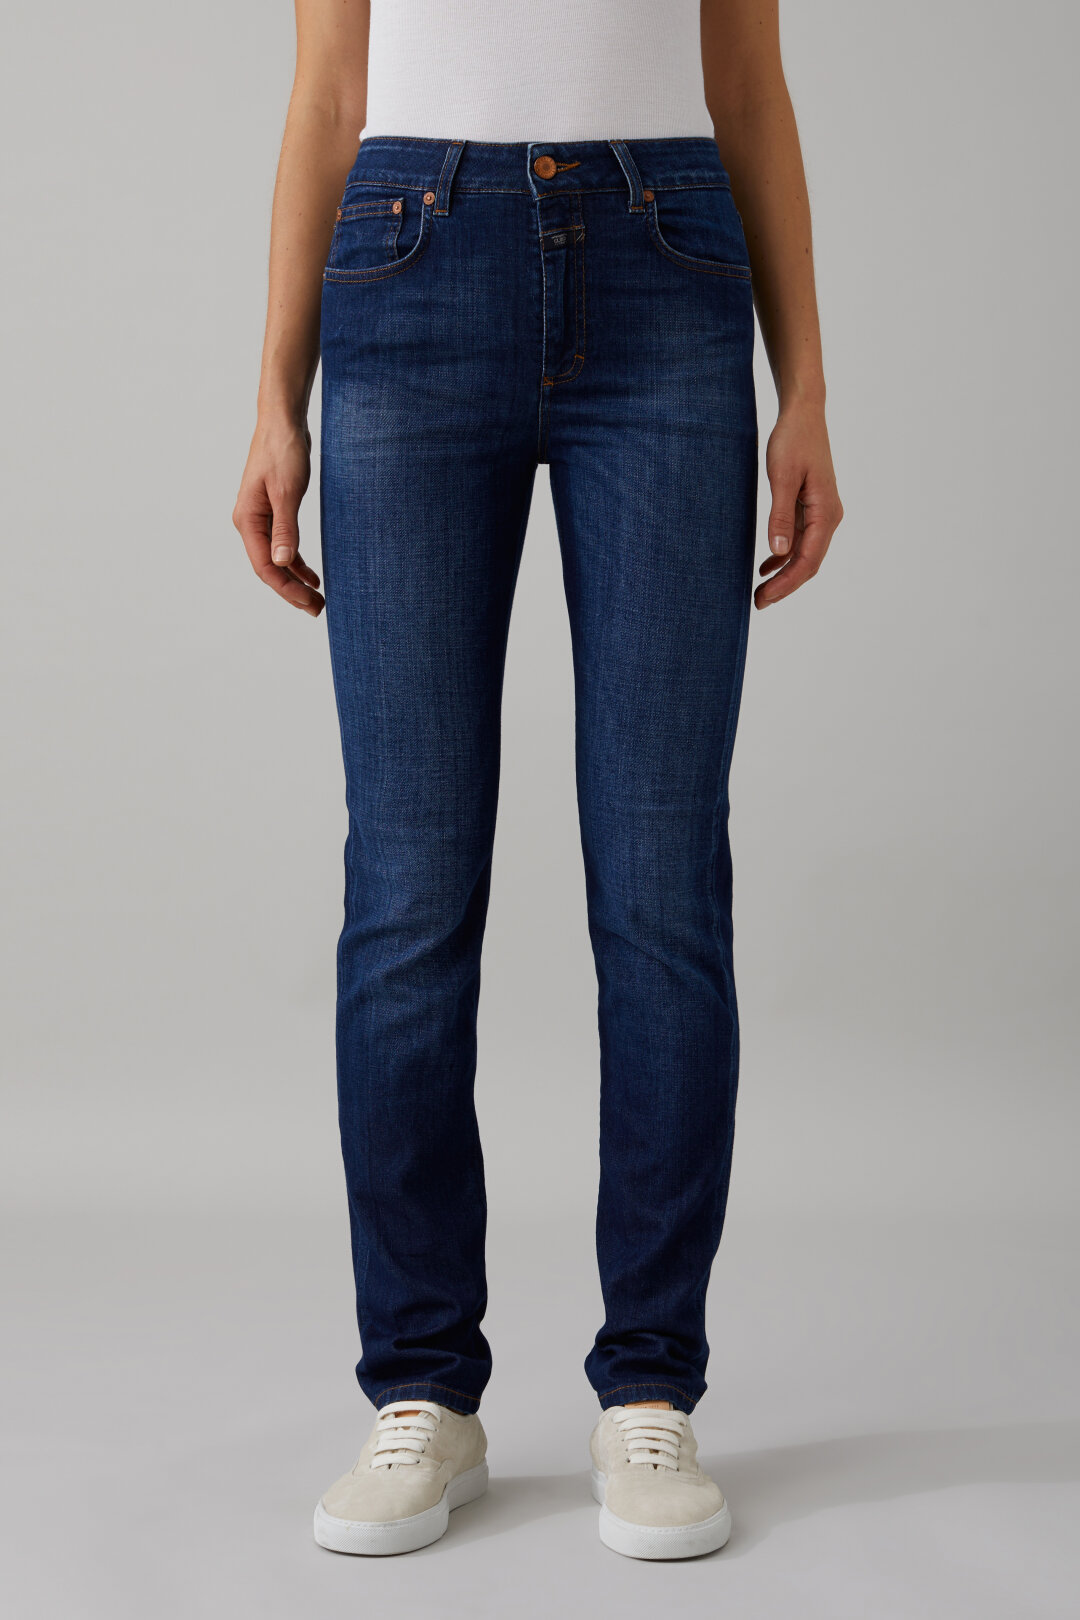 Britney Left Hand Blue Stretch Denim